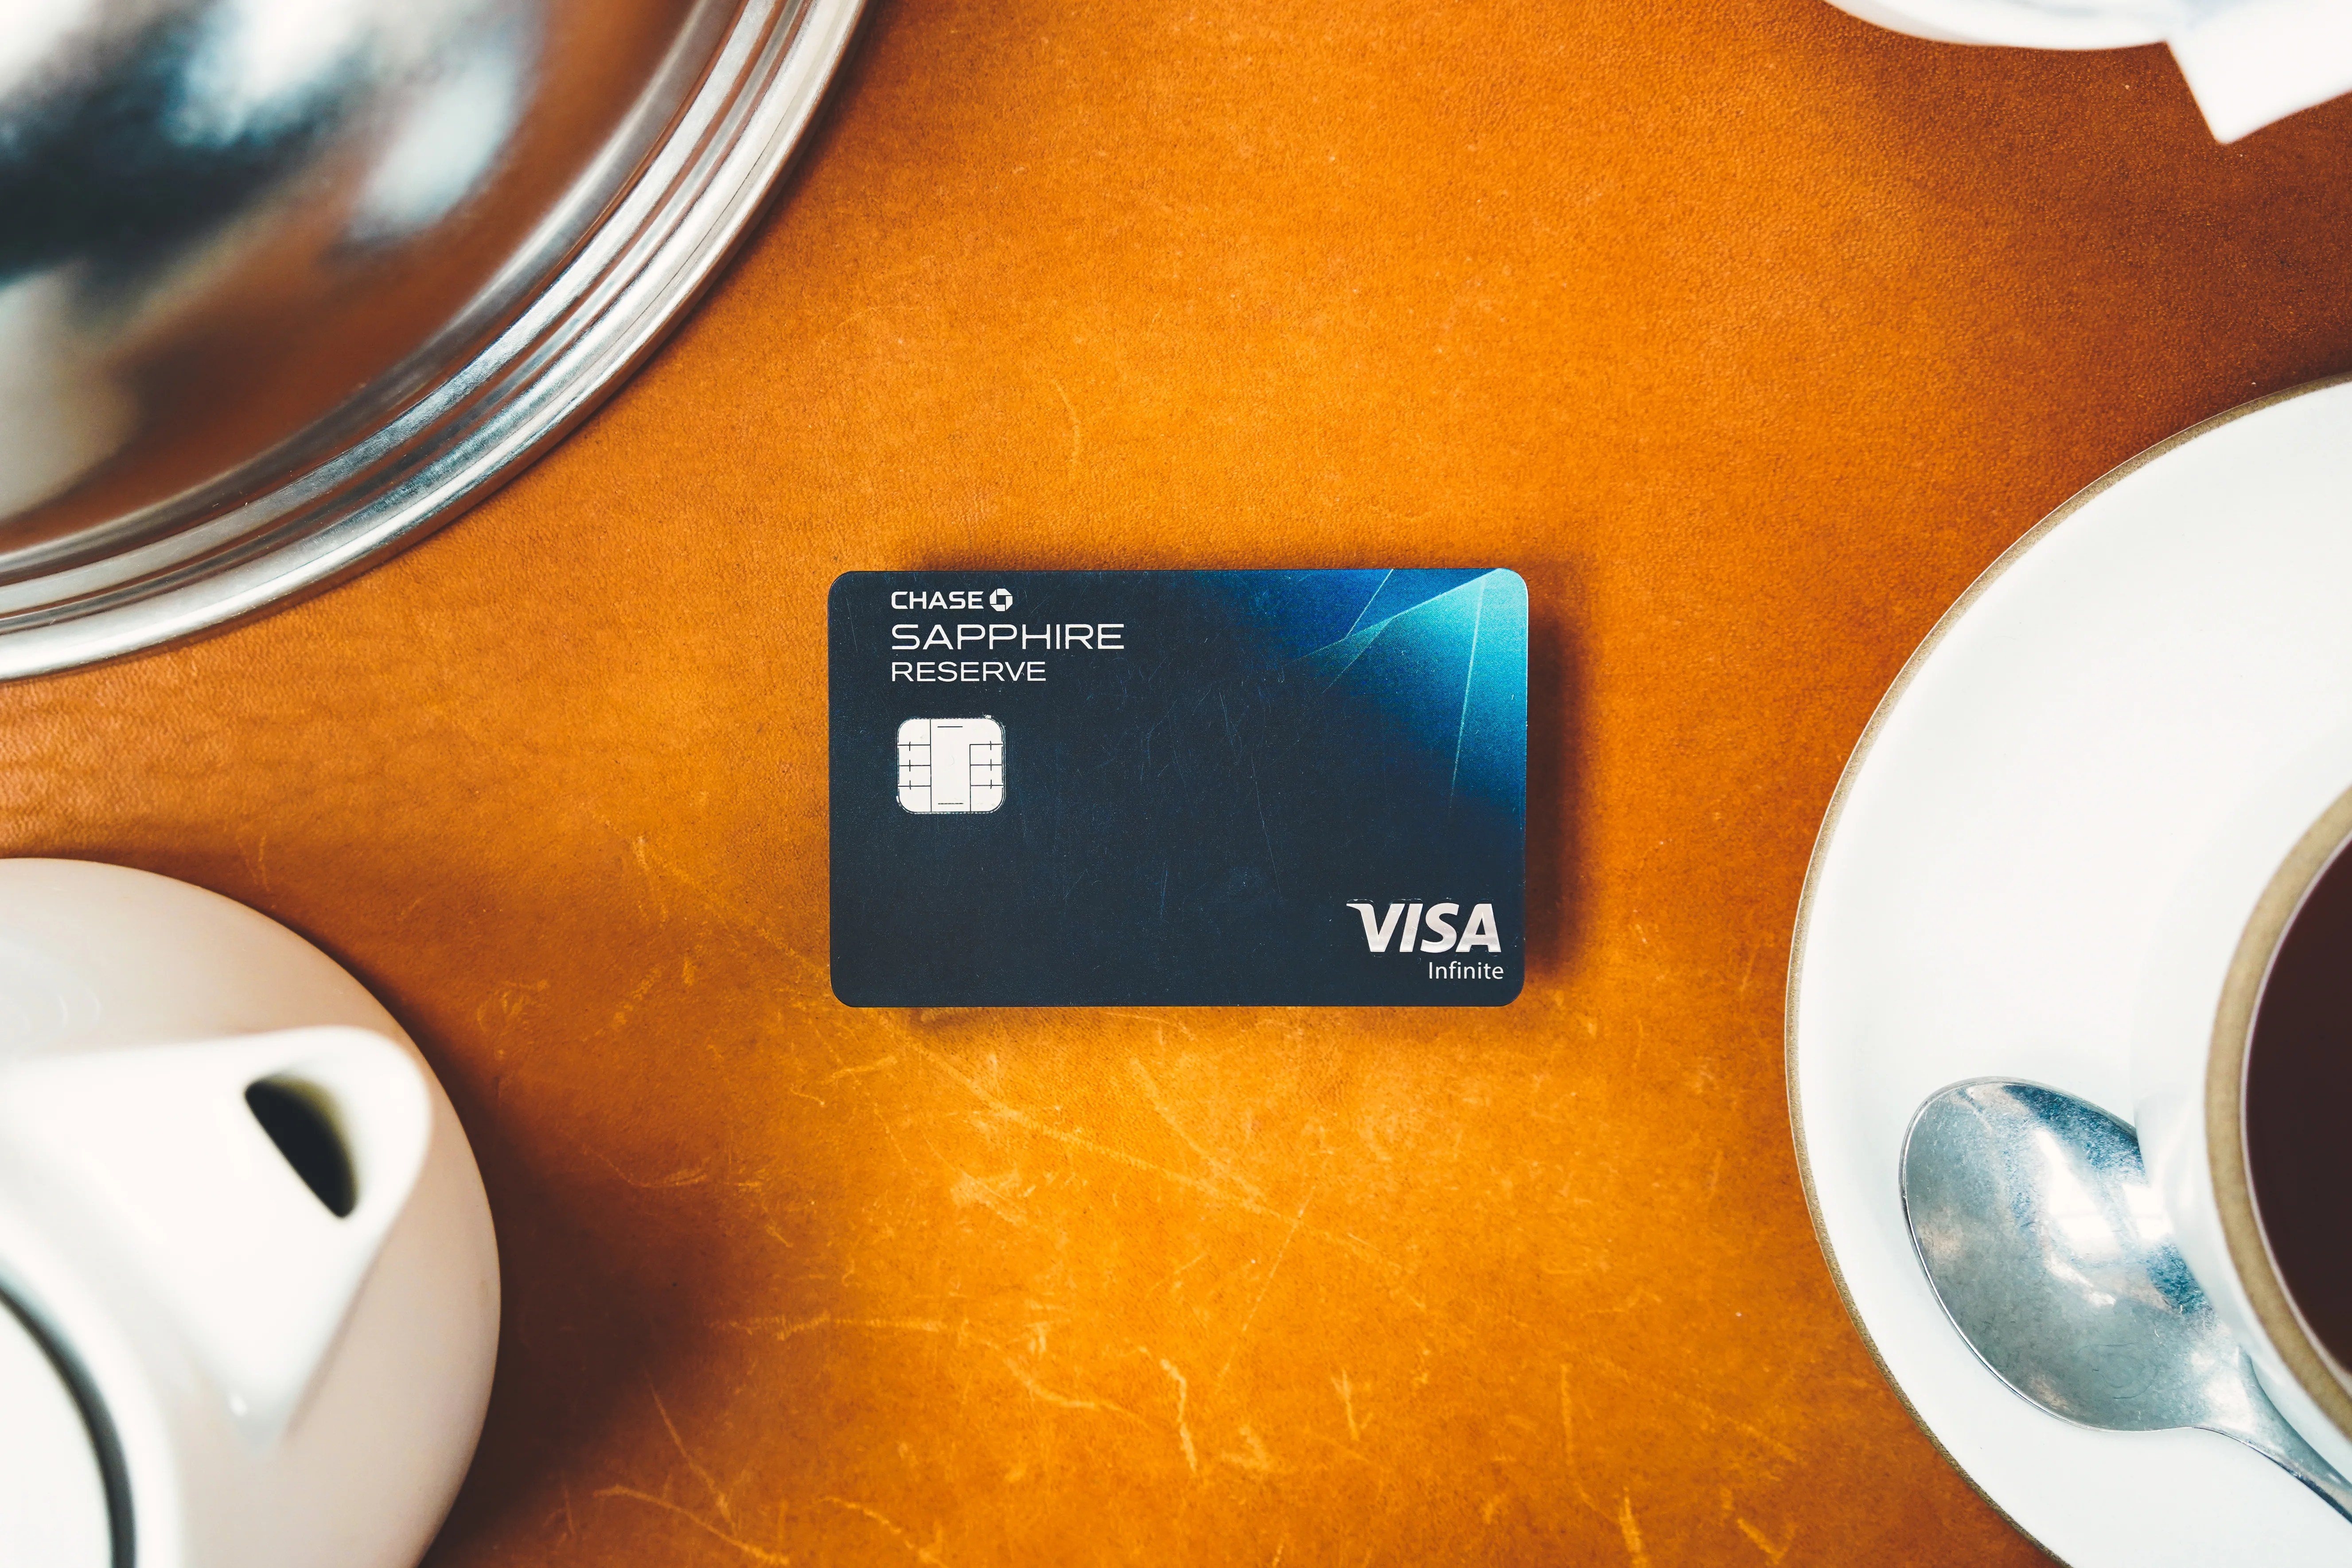 chase credit card application status check phone number